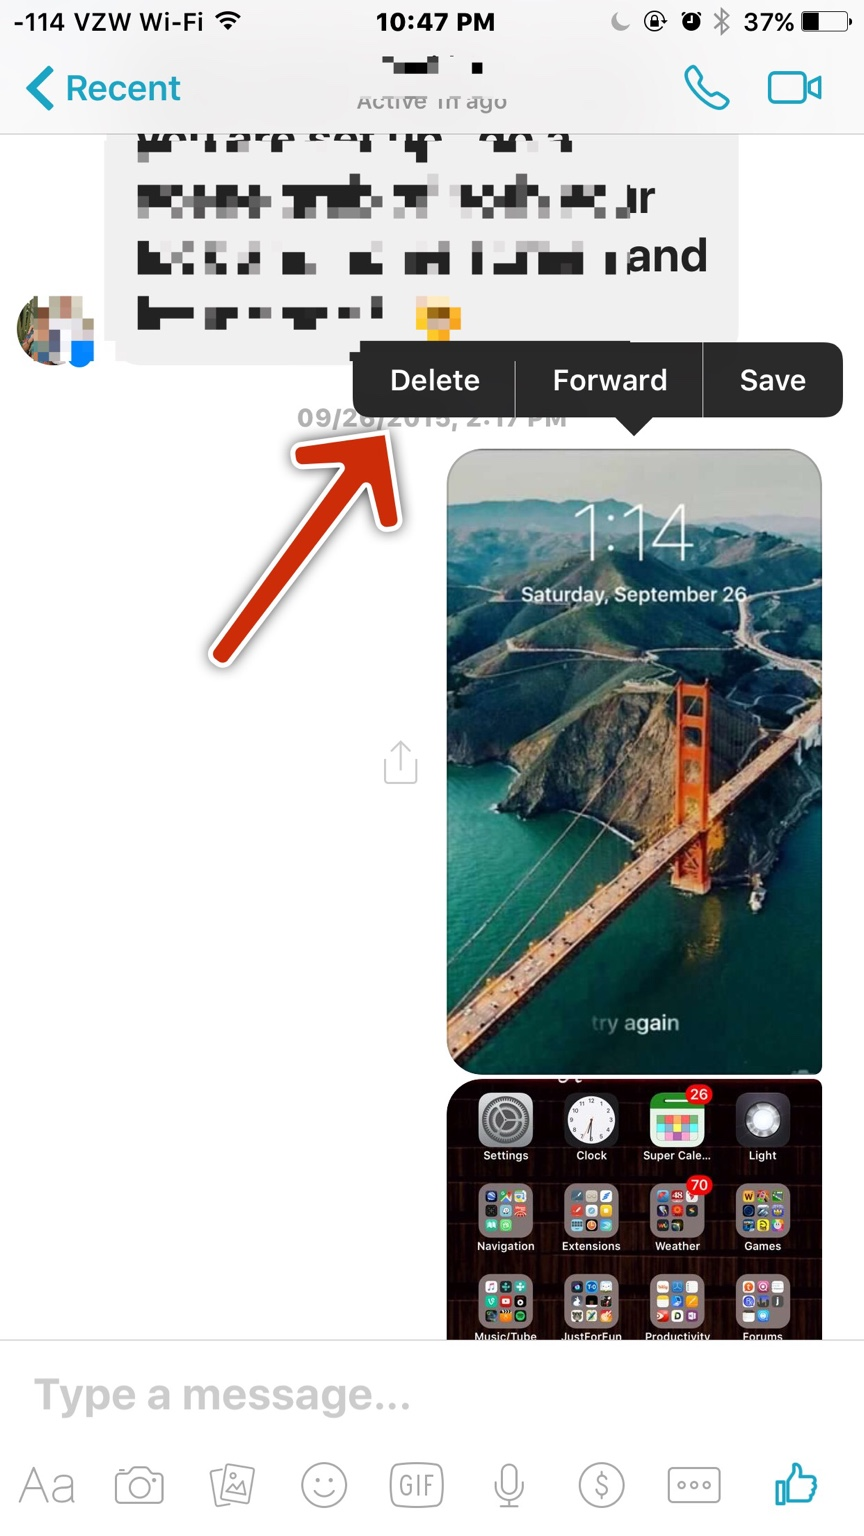 how to send photoes in facebook messenger